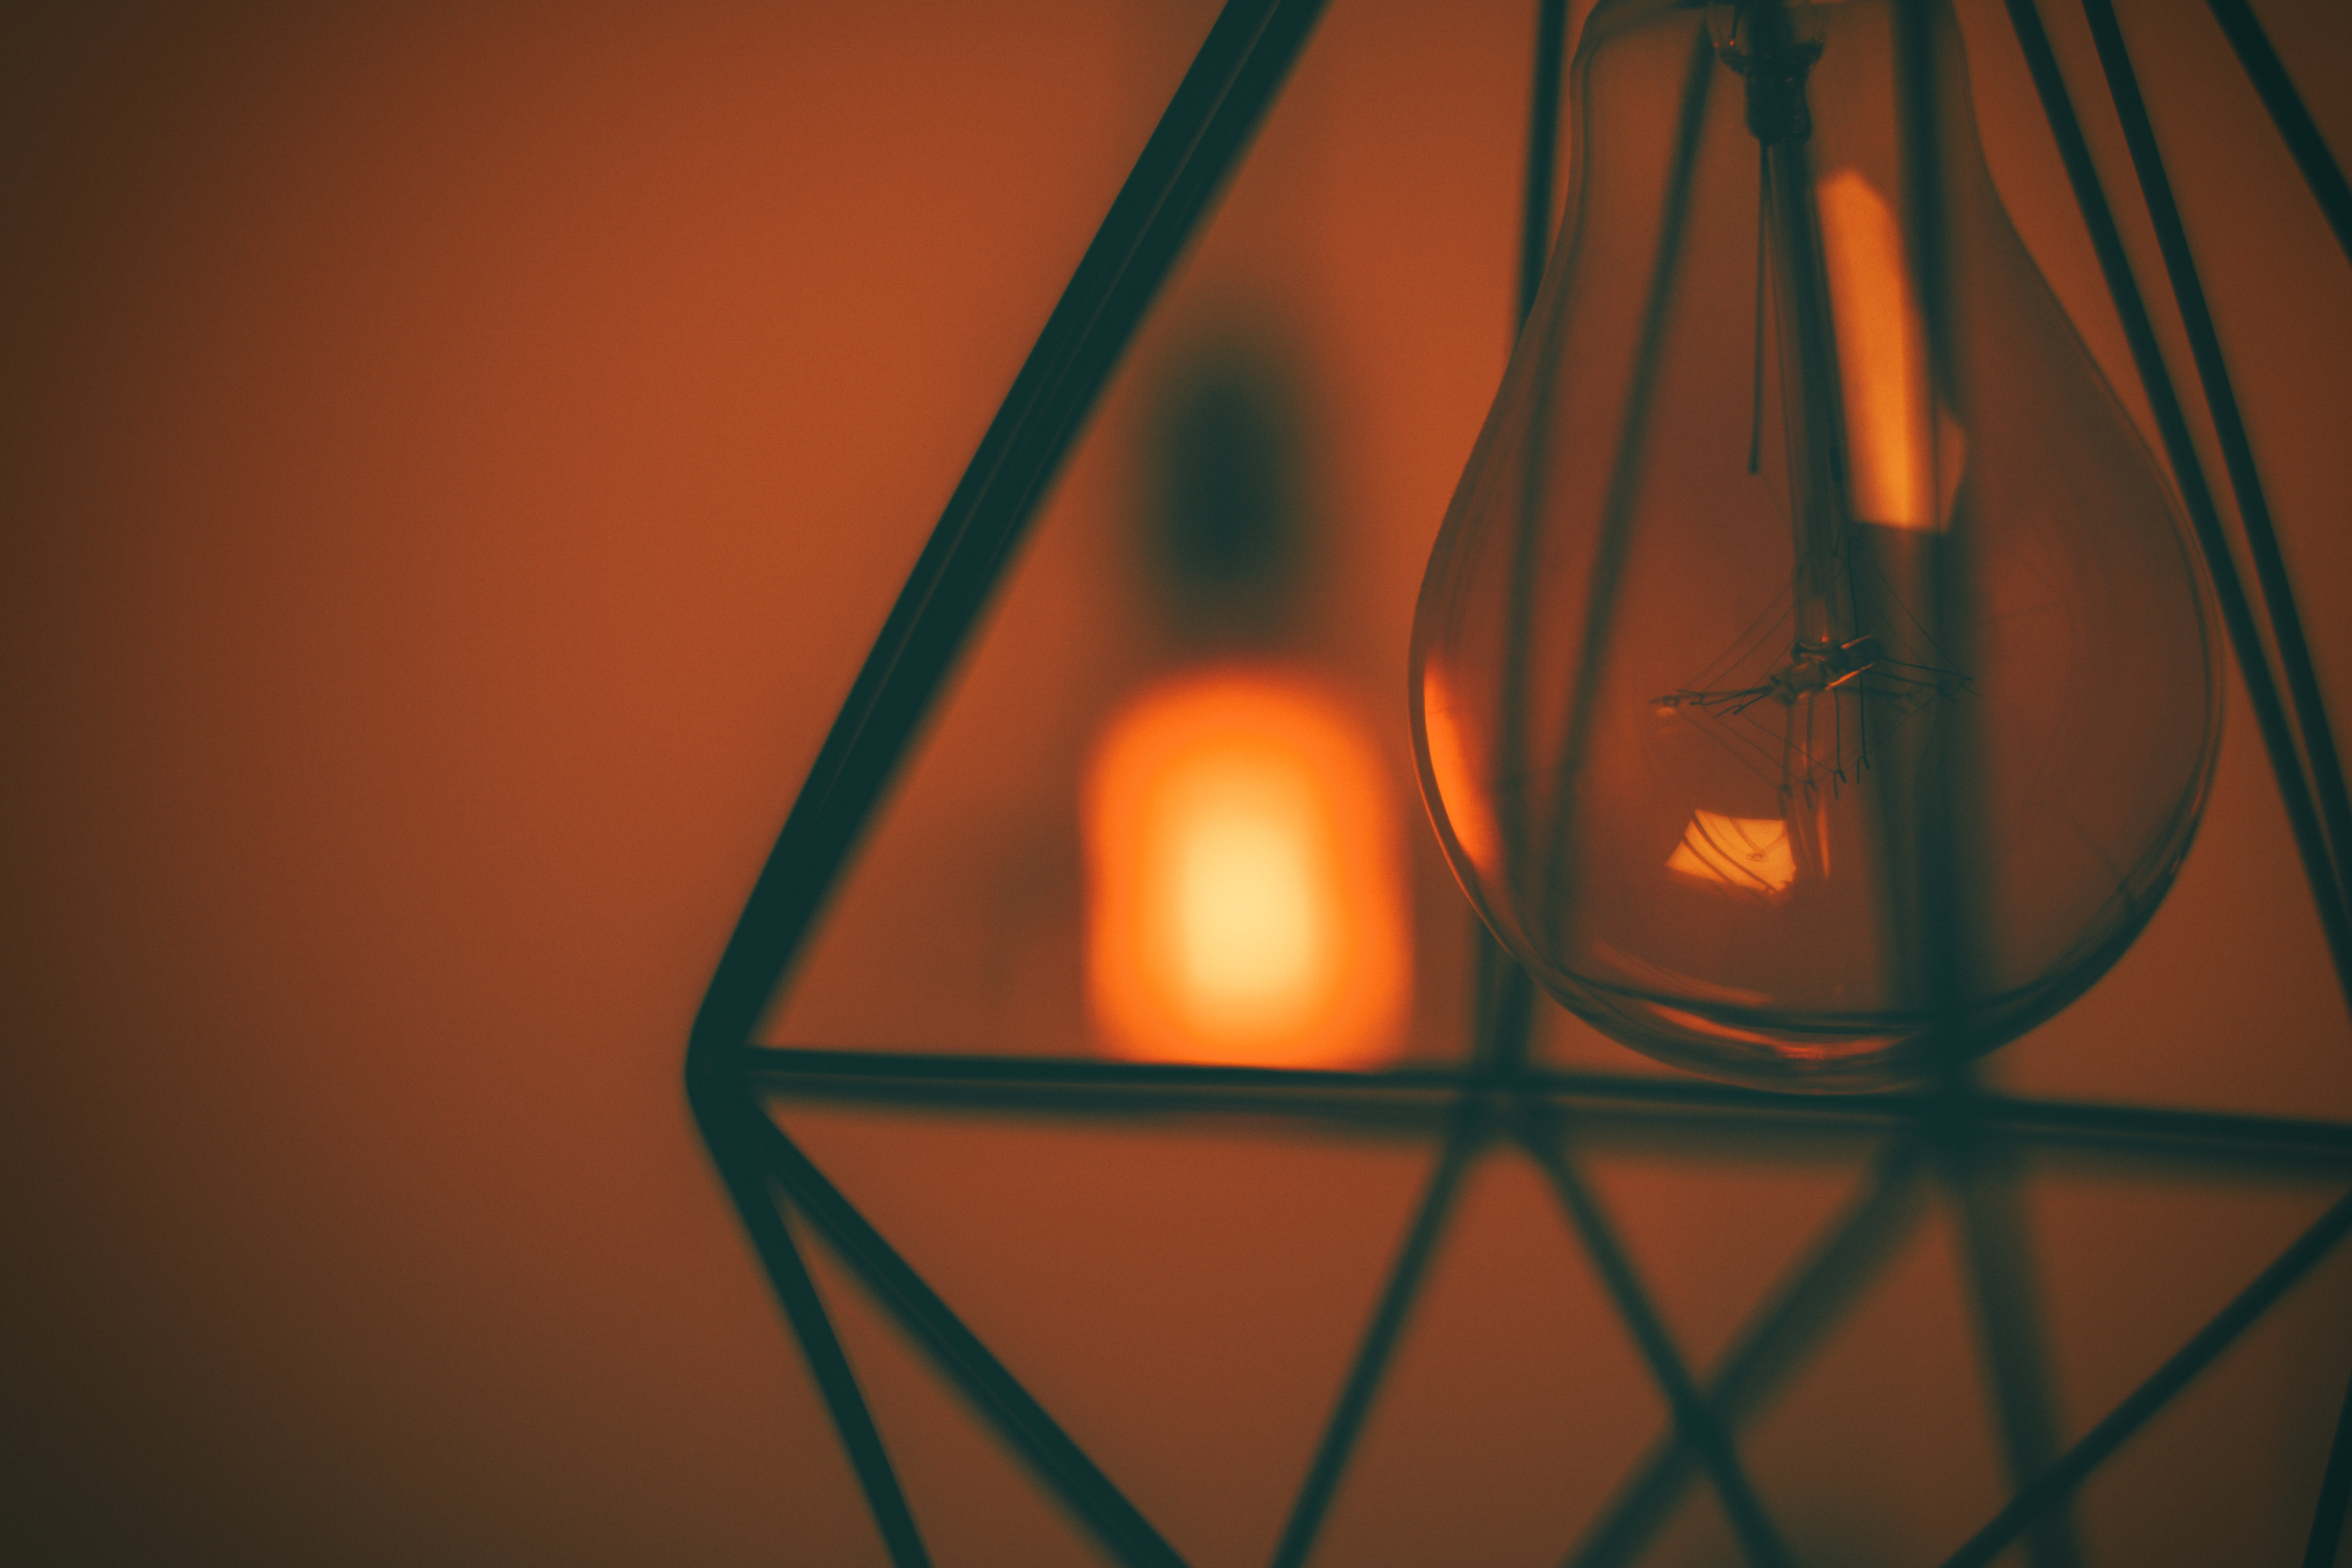 Light pendant pictures download free images on unsplash